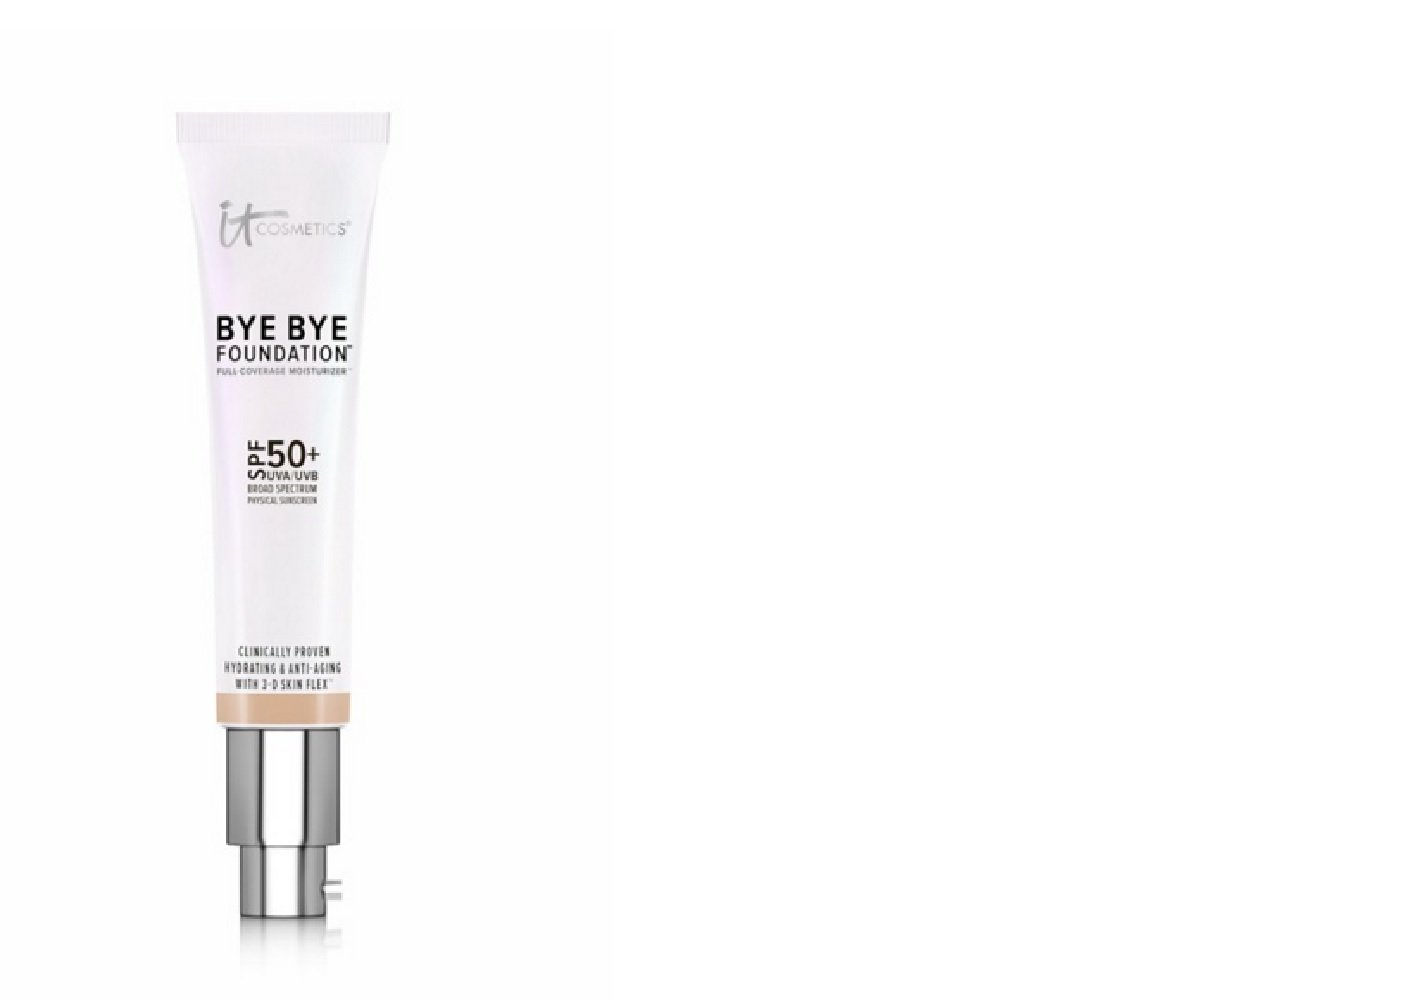 It Cosmetics Bye Bye Foundation Spf 50+ Full Coverage Anti-aging Moisturizer - 1.08 Oz - Medium